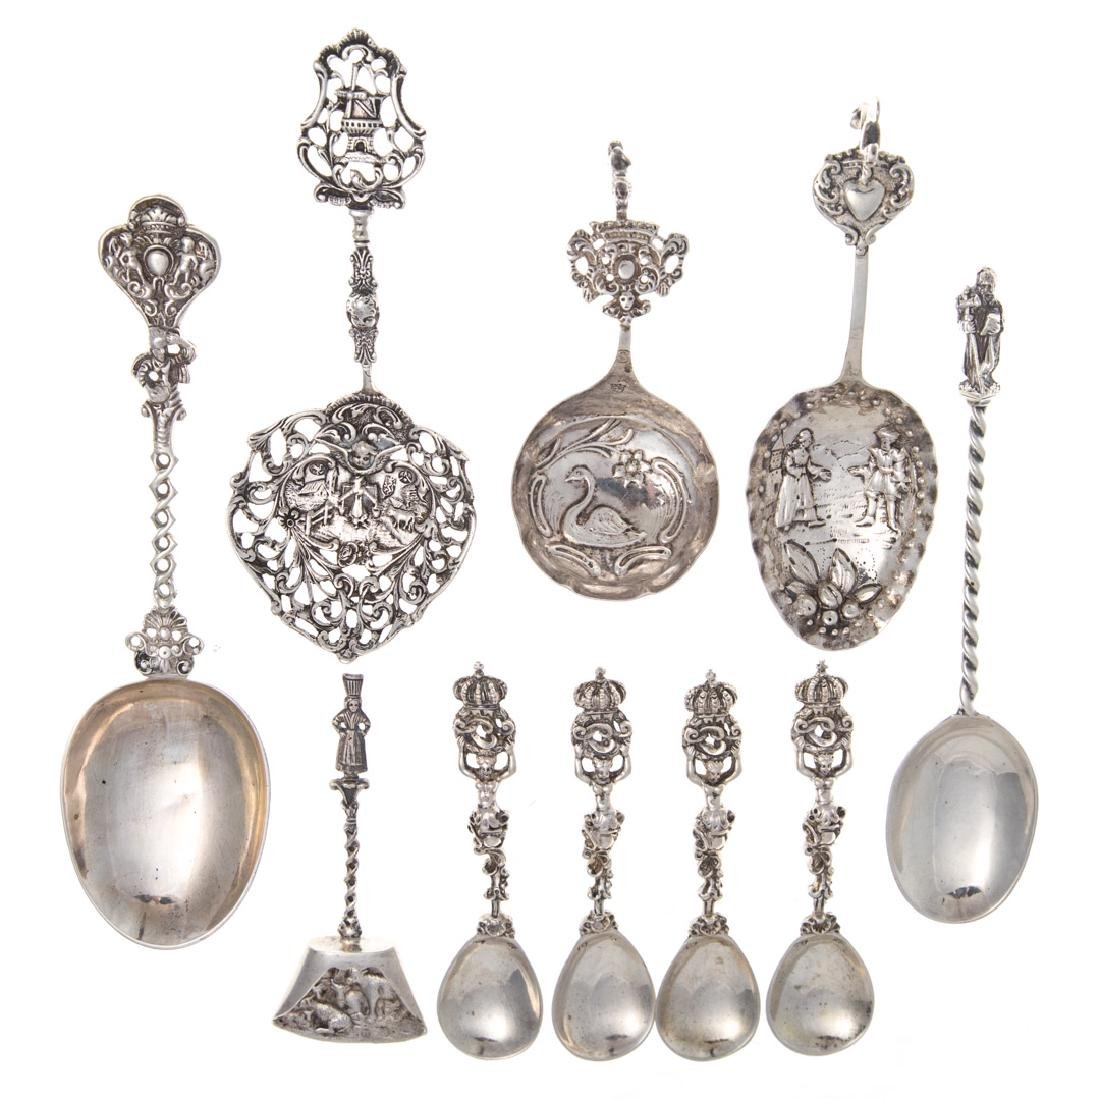 10 Continental silver spoons